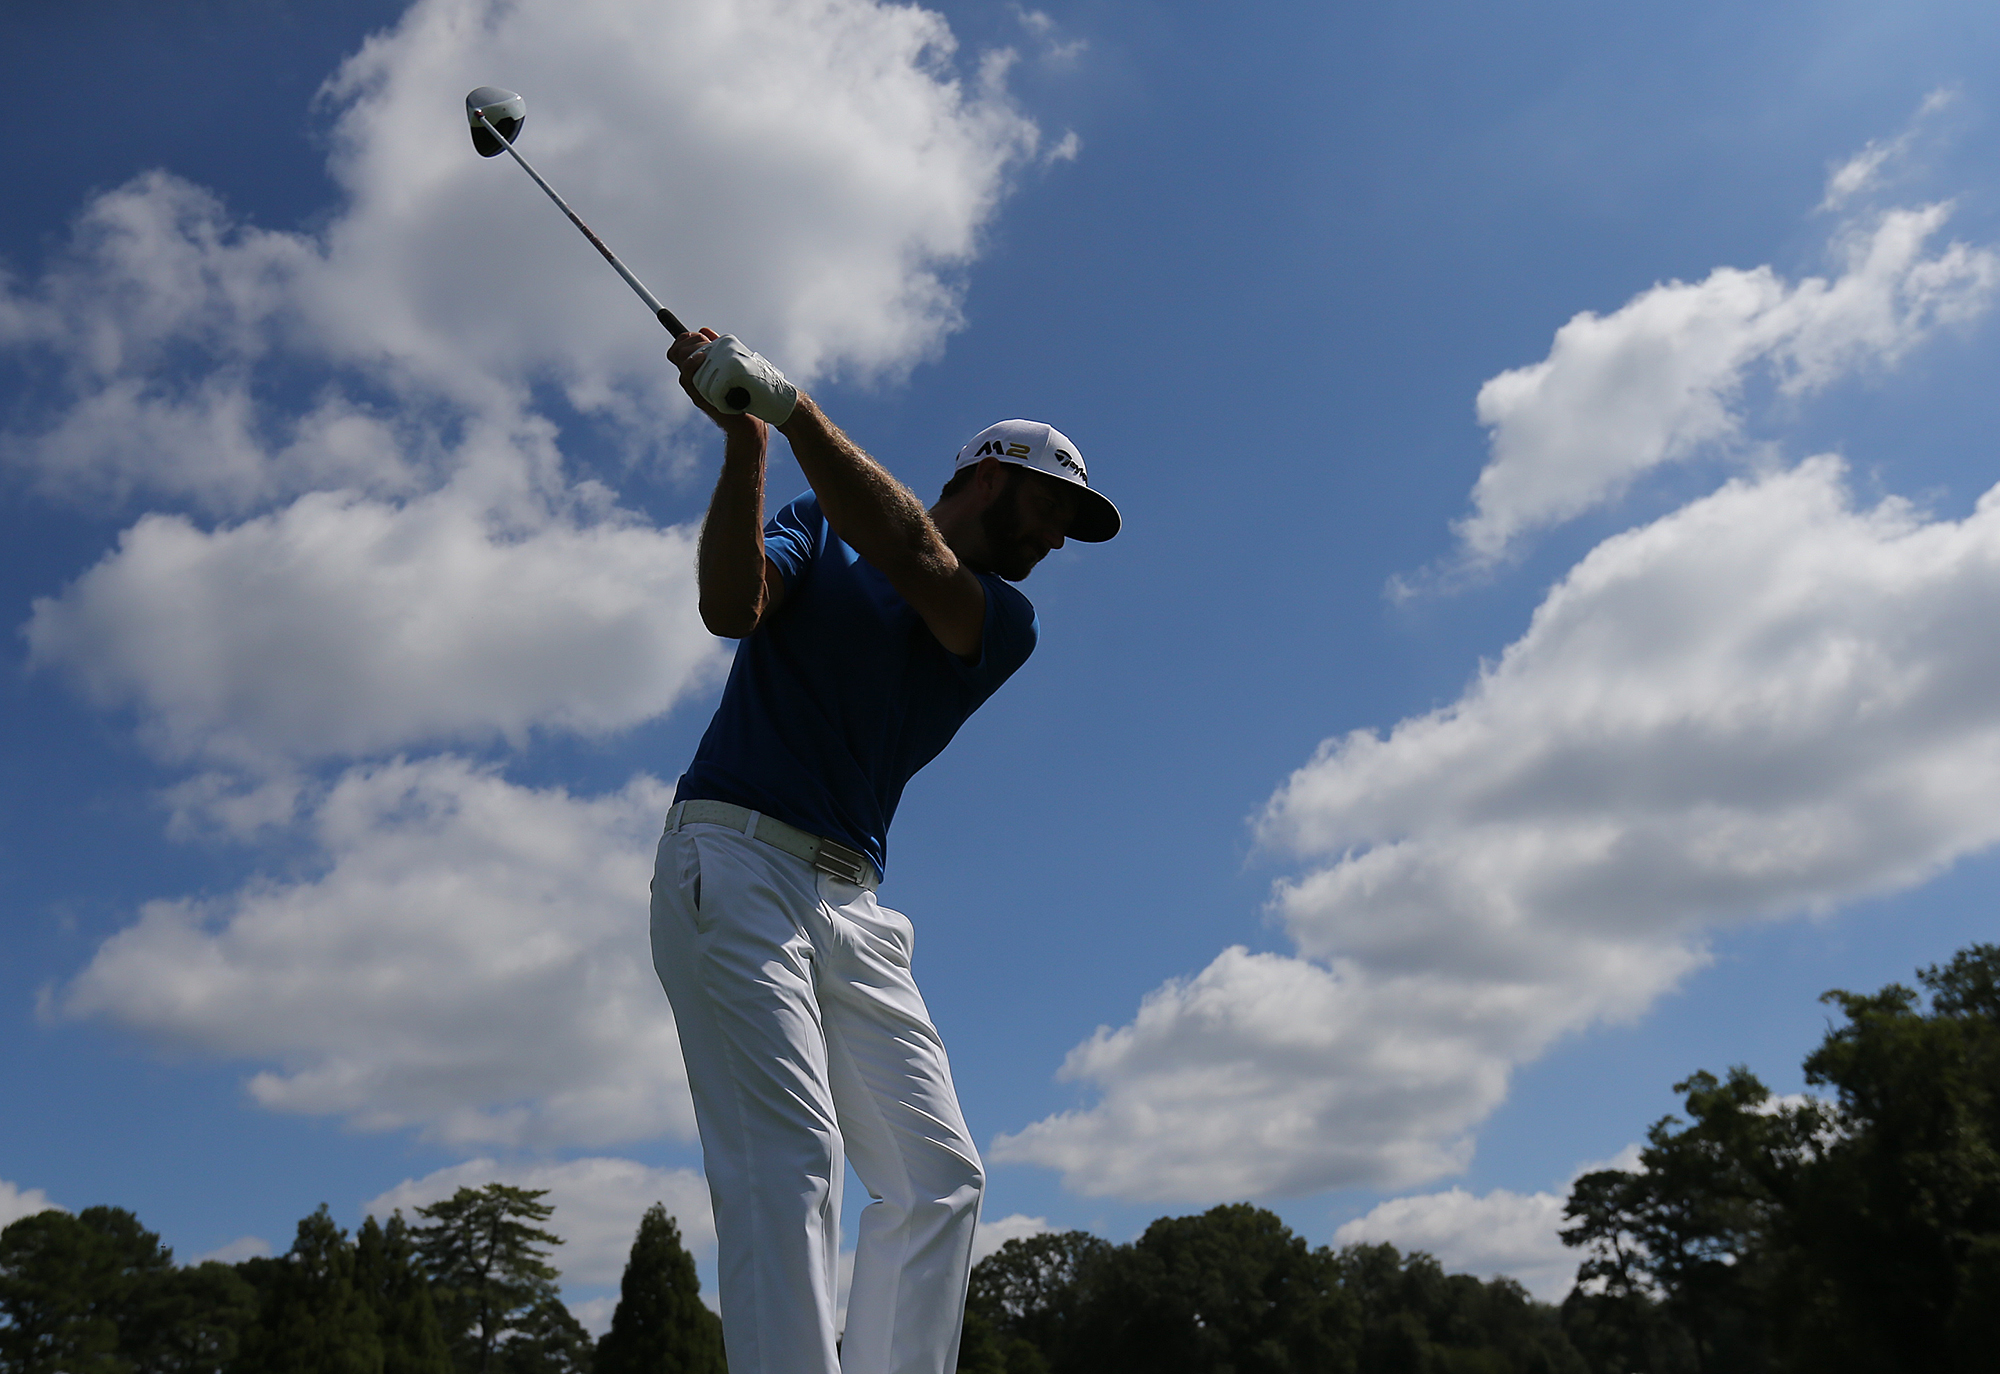 Dustin Johnson tees off on the sixth hole during a practice round for the Tour Championship golf tournament at East Lake Golf Club in Atlanta,  on Tuesday, Sept. 20, 2016, (Curtis Compton/Atlanta Journal-Constitution via AP)